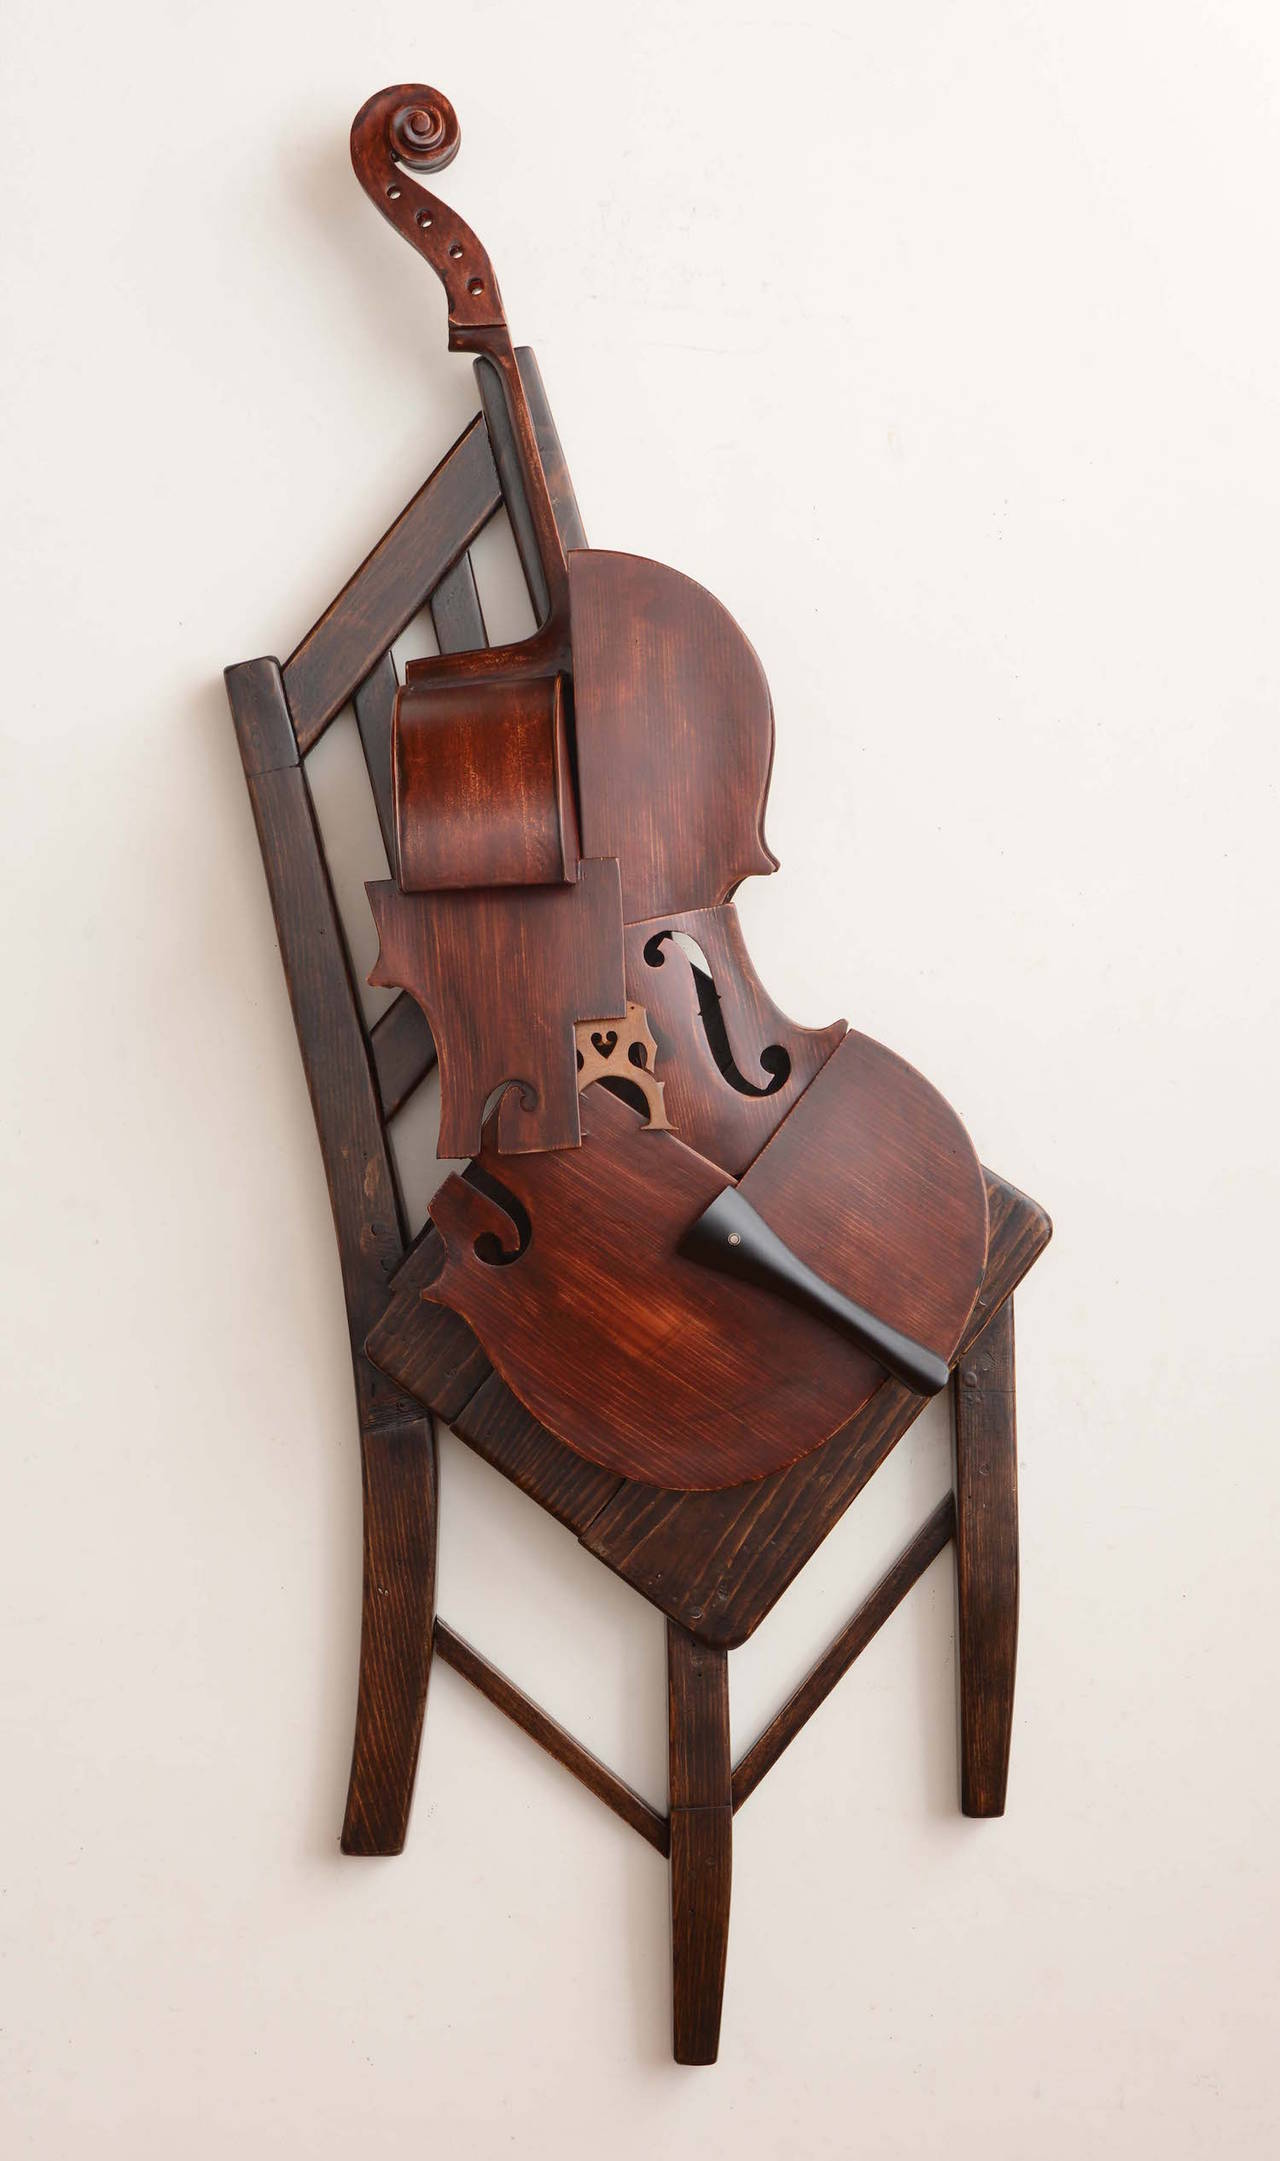 Koji Takei Cello and Chair 1 Sculpture at 1stdibs